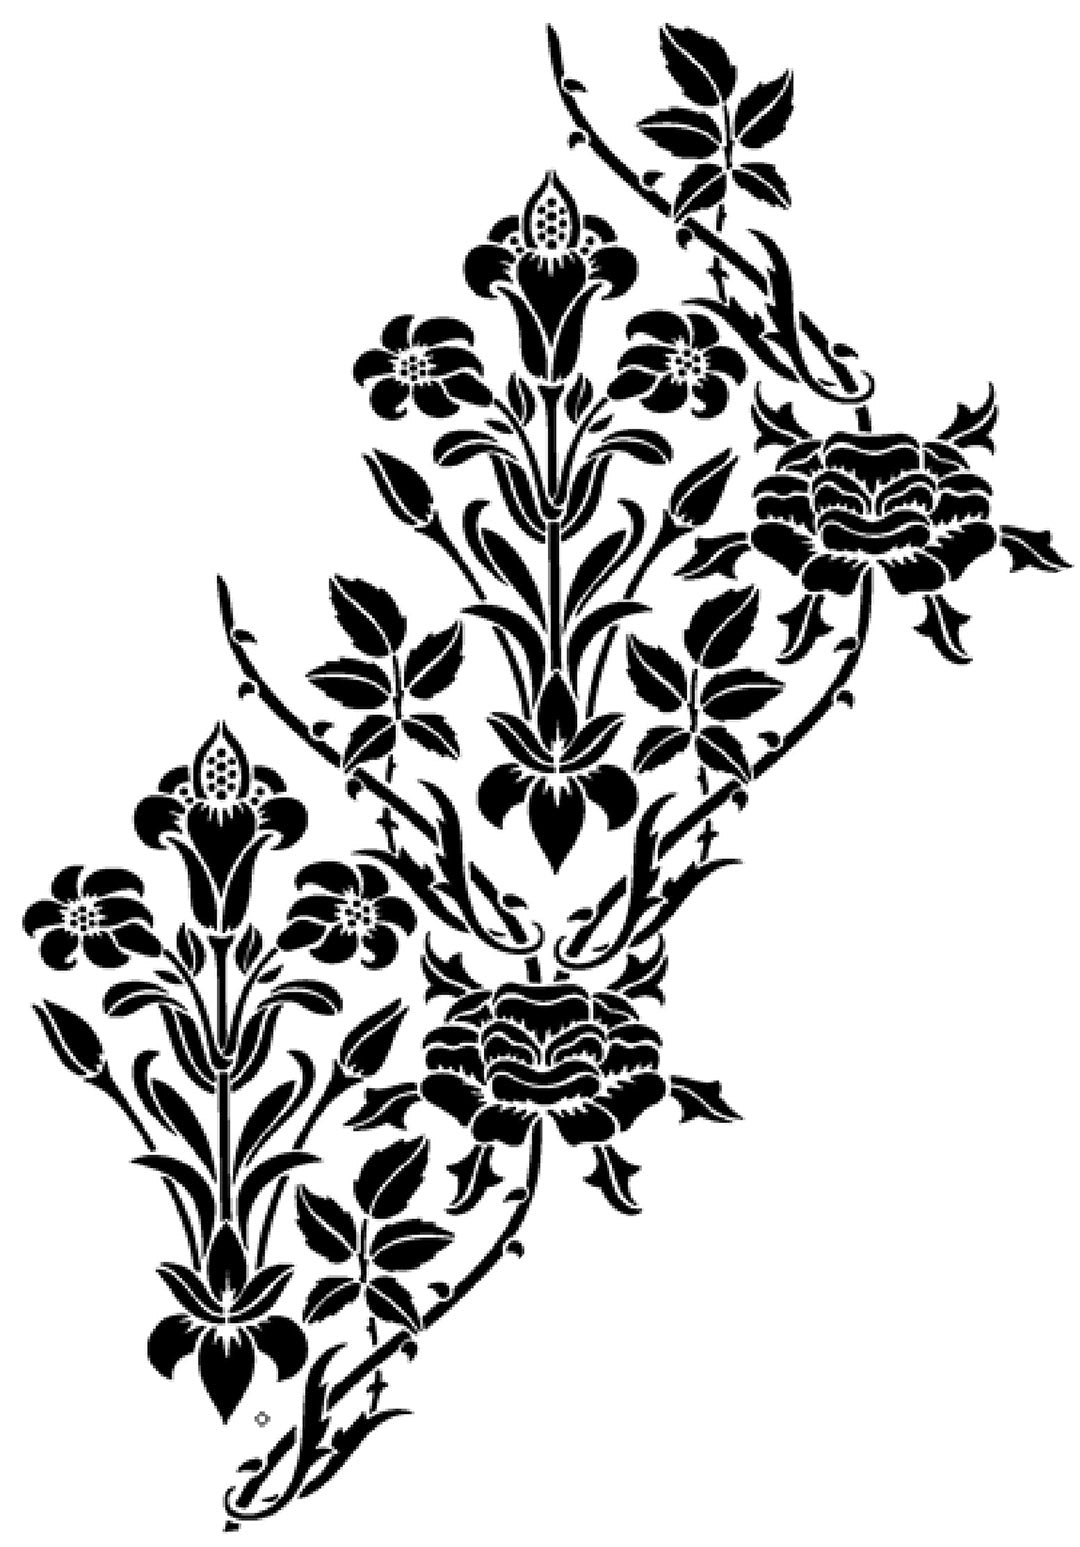 The stencil design from The Stencil Library.